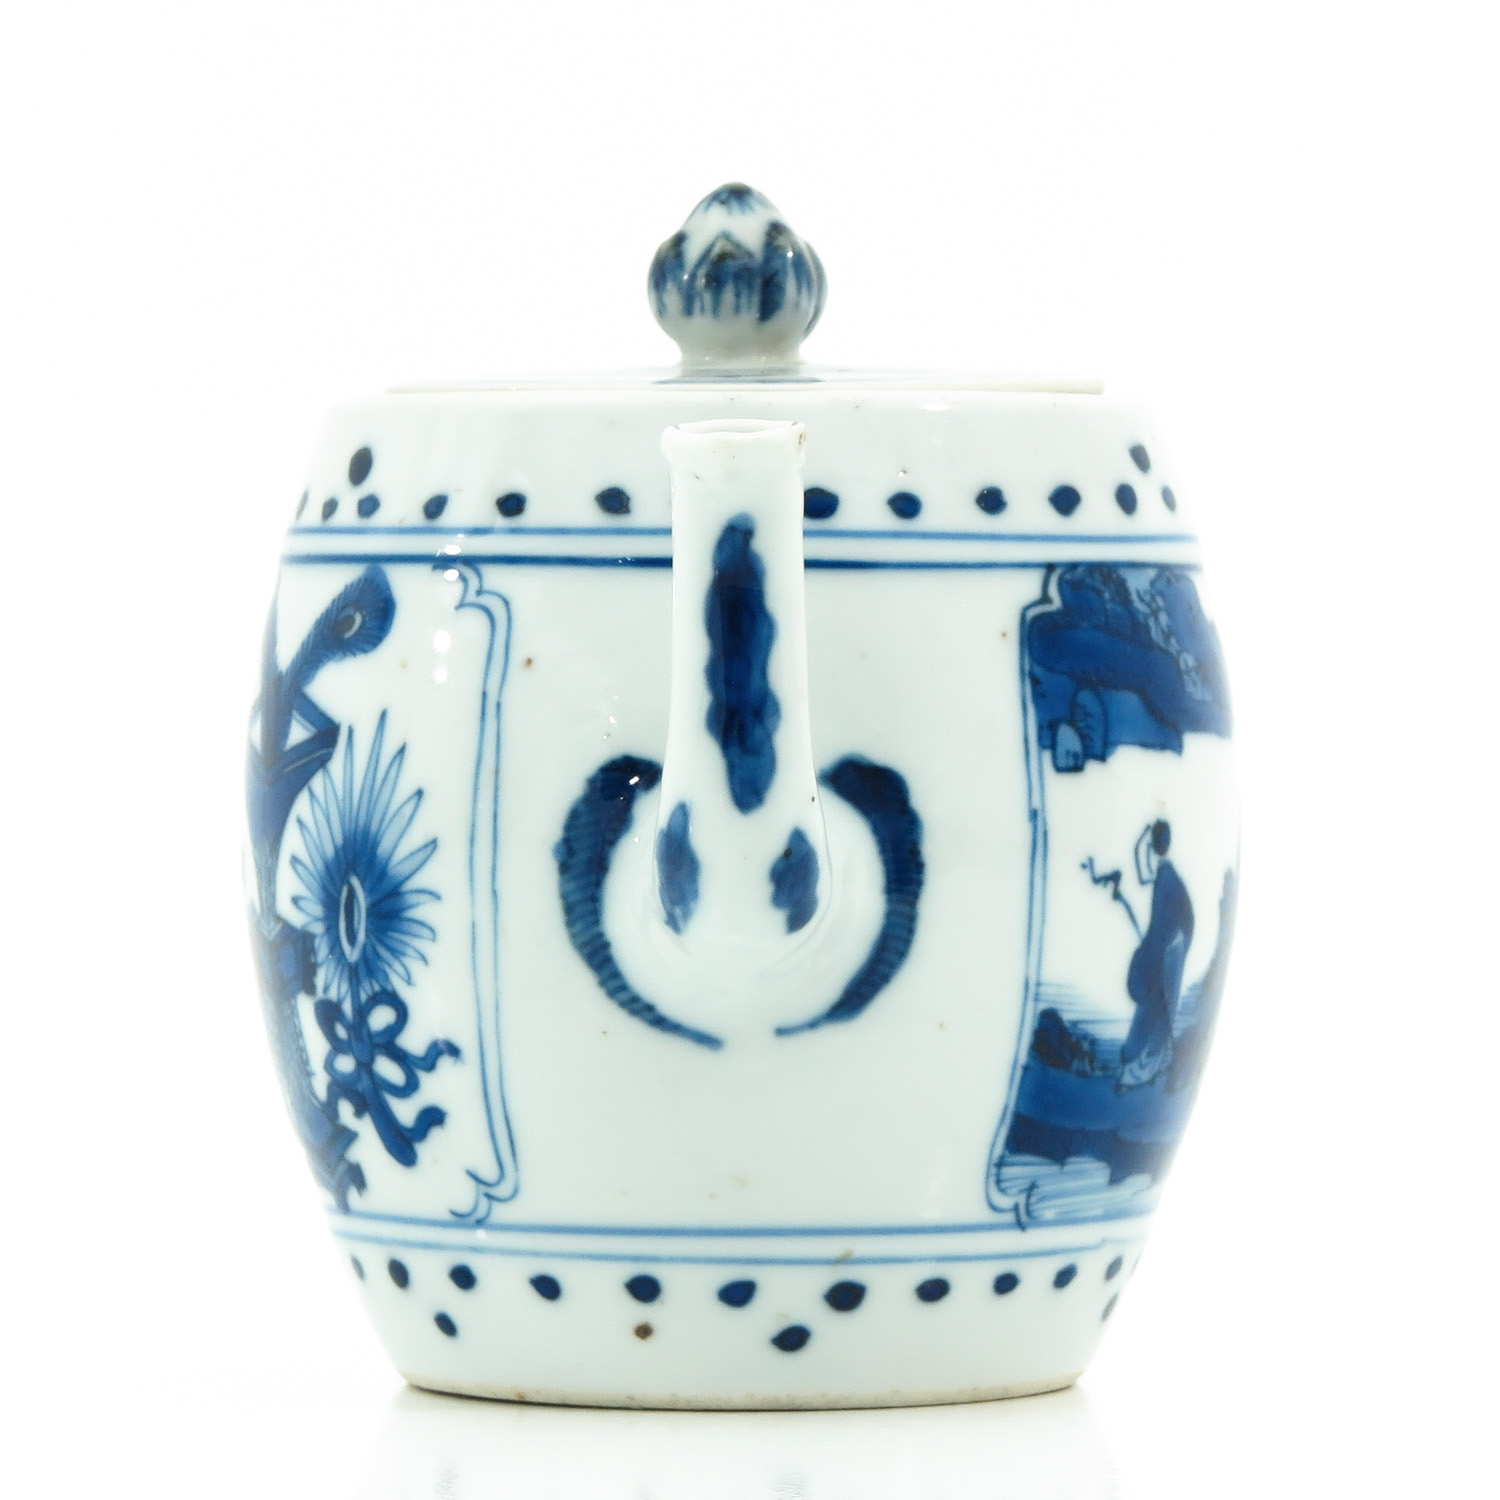 A Blue and White Teapot - Image 4 of 10